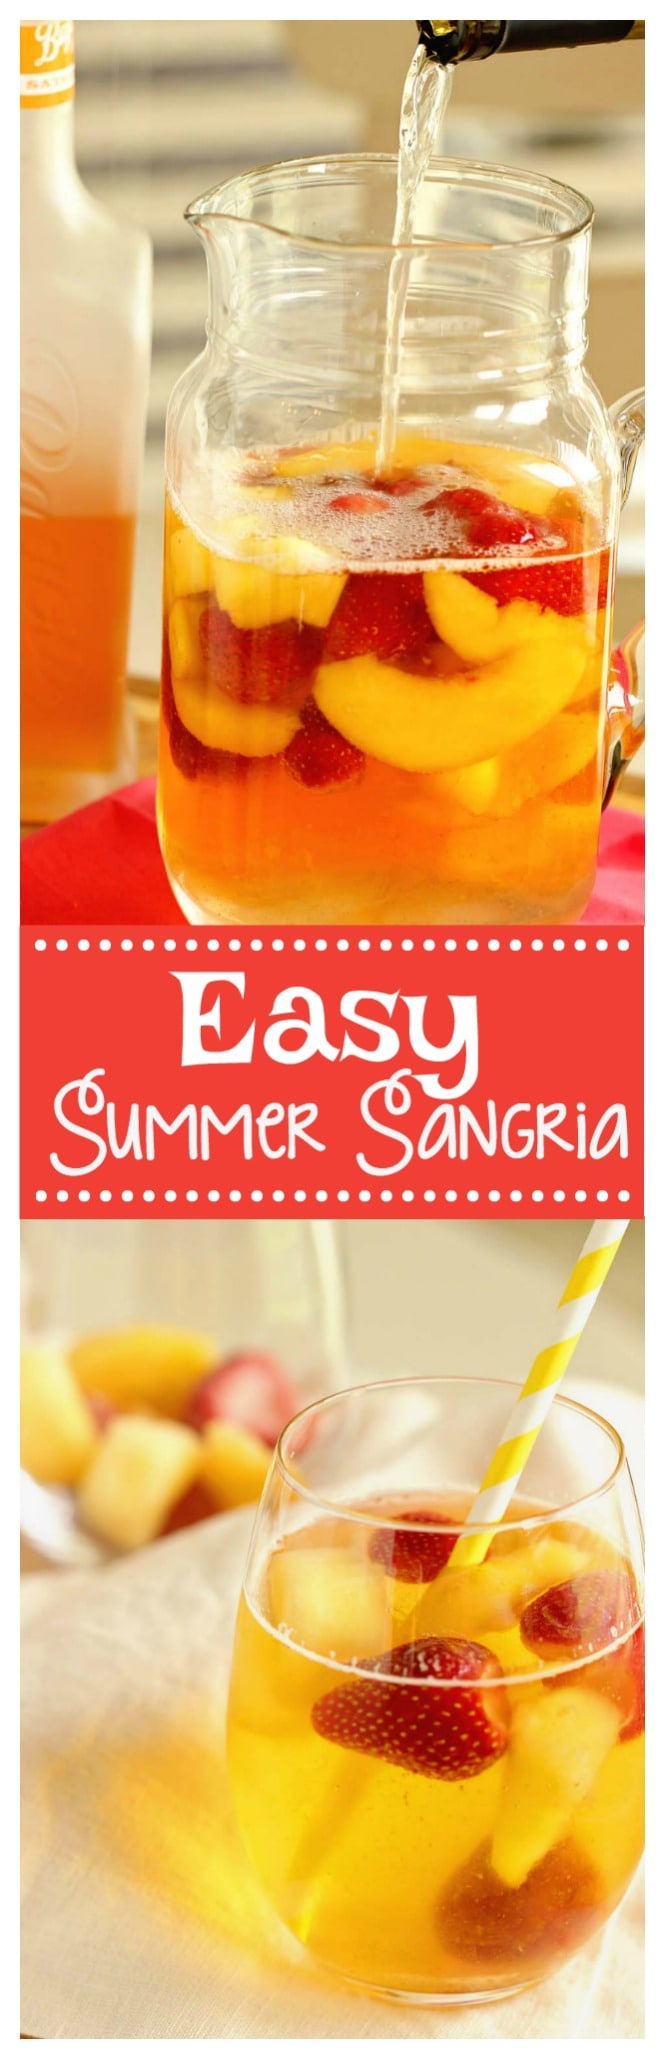 Easy Summer Sangria - A super easy sangria recipe perfect for the beach or the pool!  Plus, it can be made with white or red wine!!